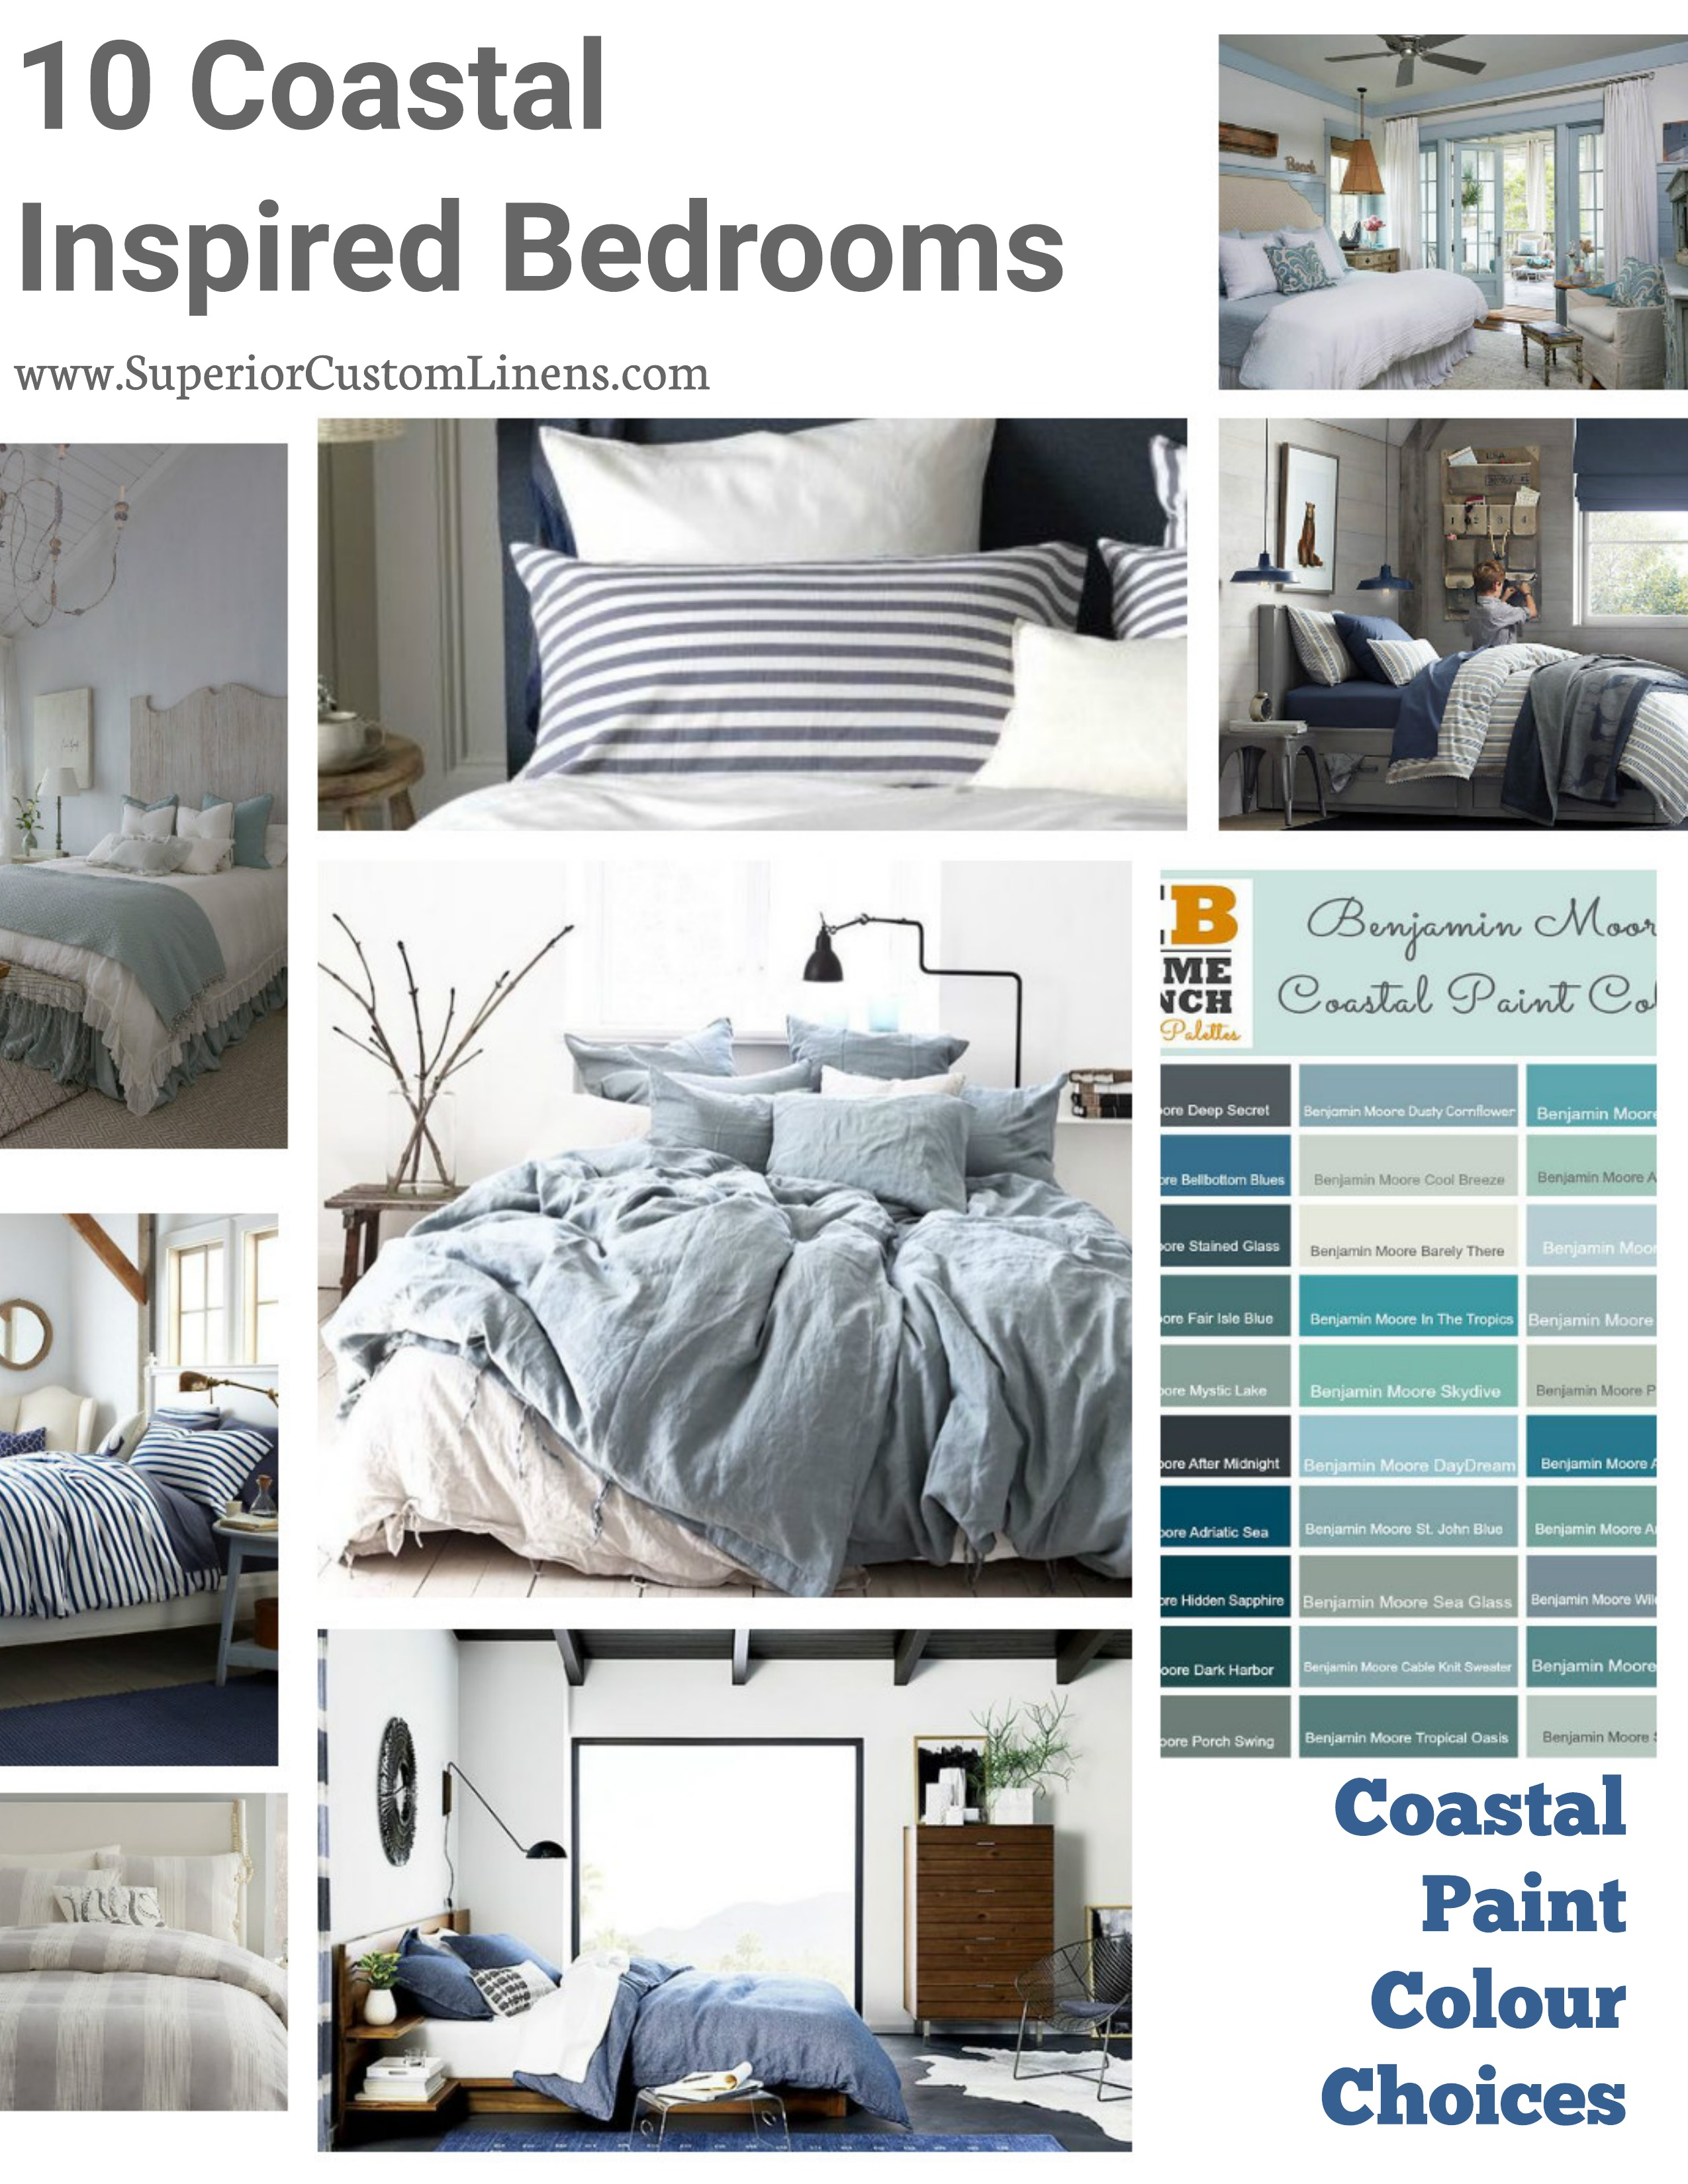 High Quality 10 Coastal Inspired Bedrooms With Coastal Paint Colour Choices